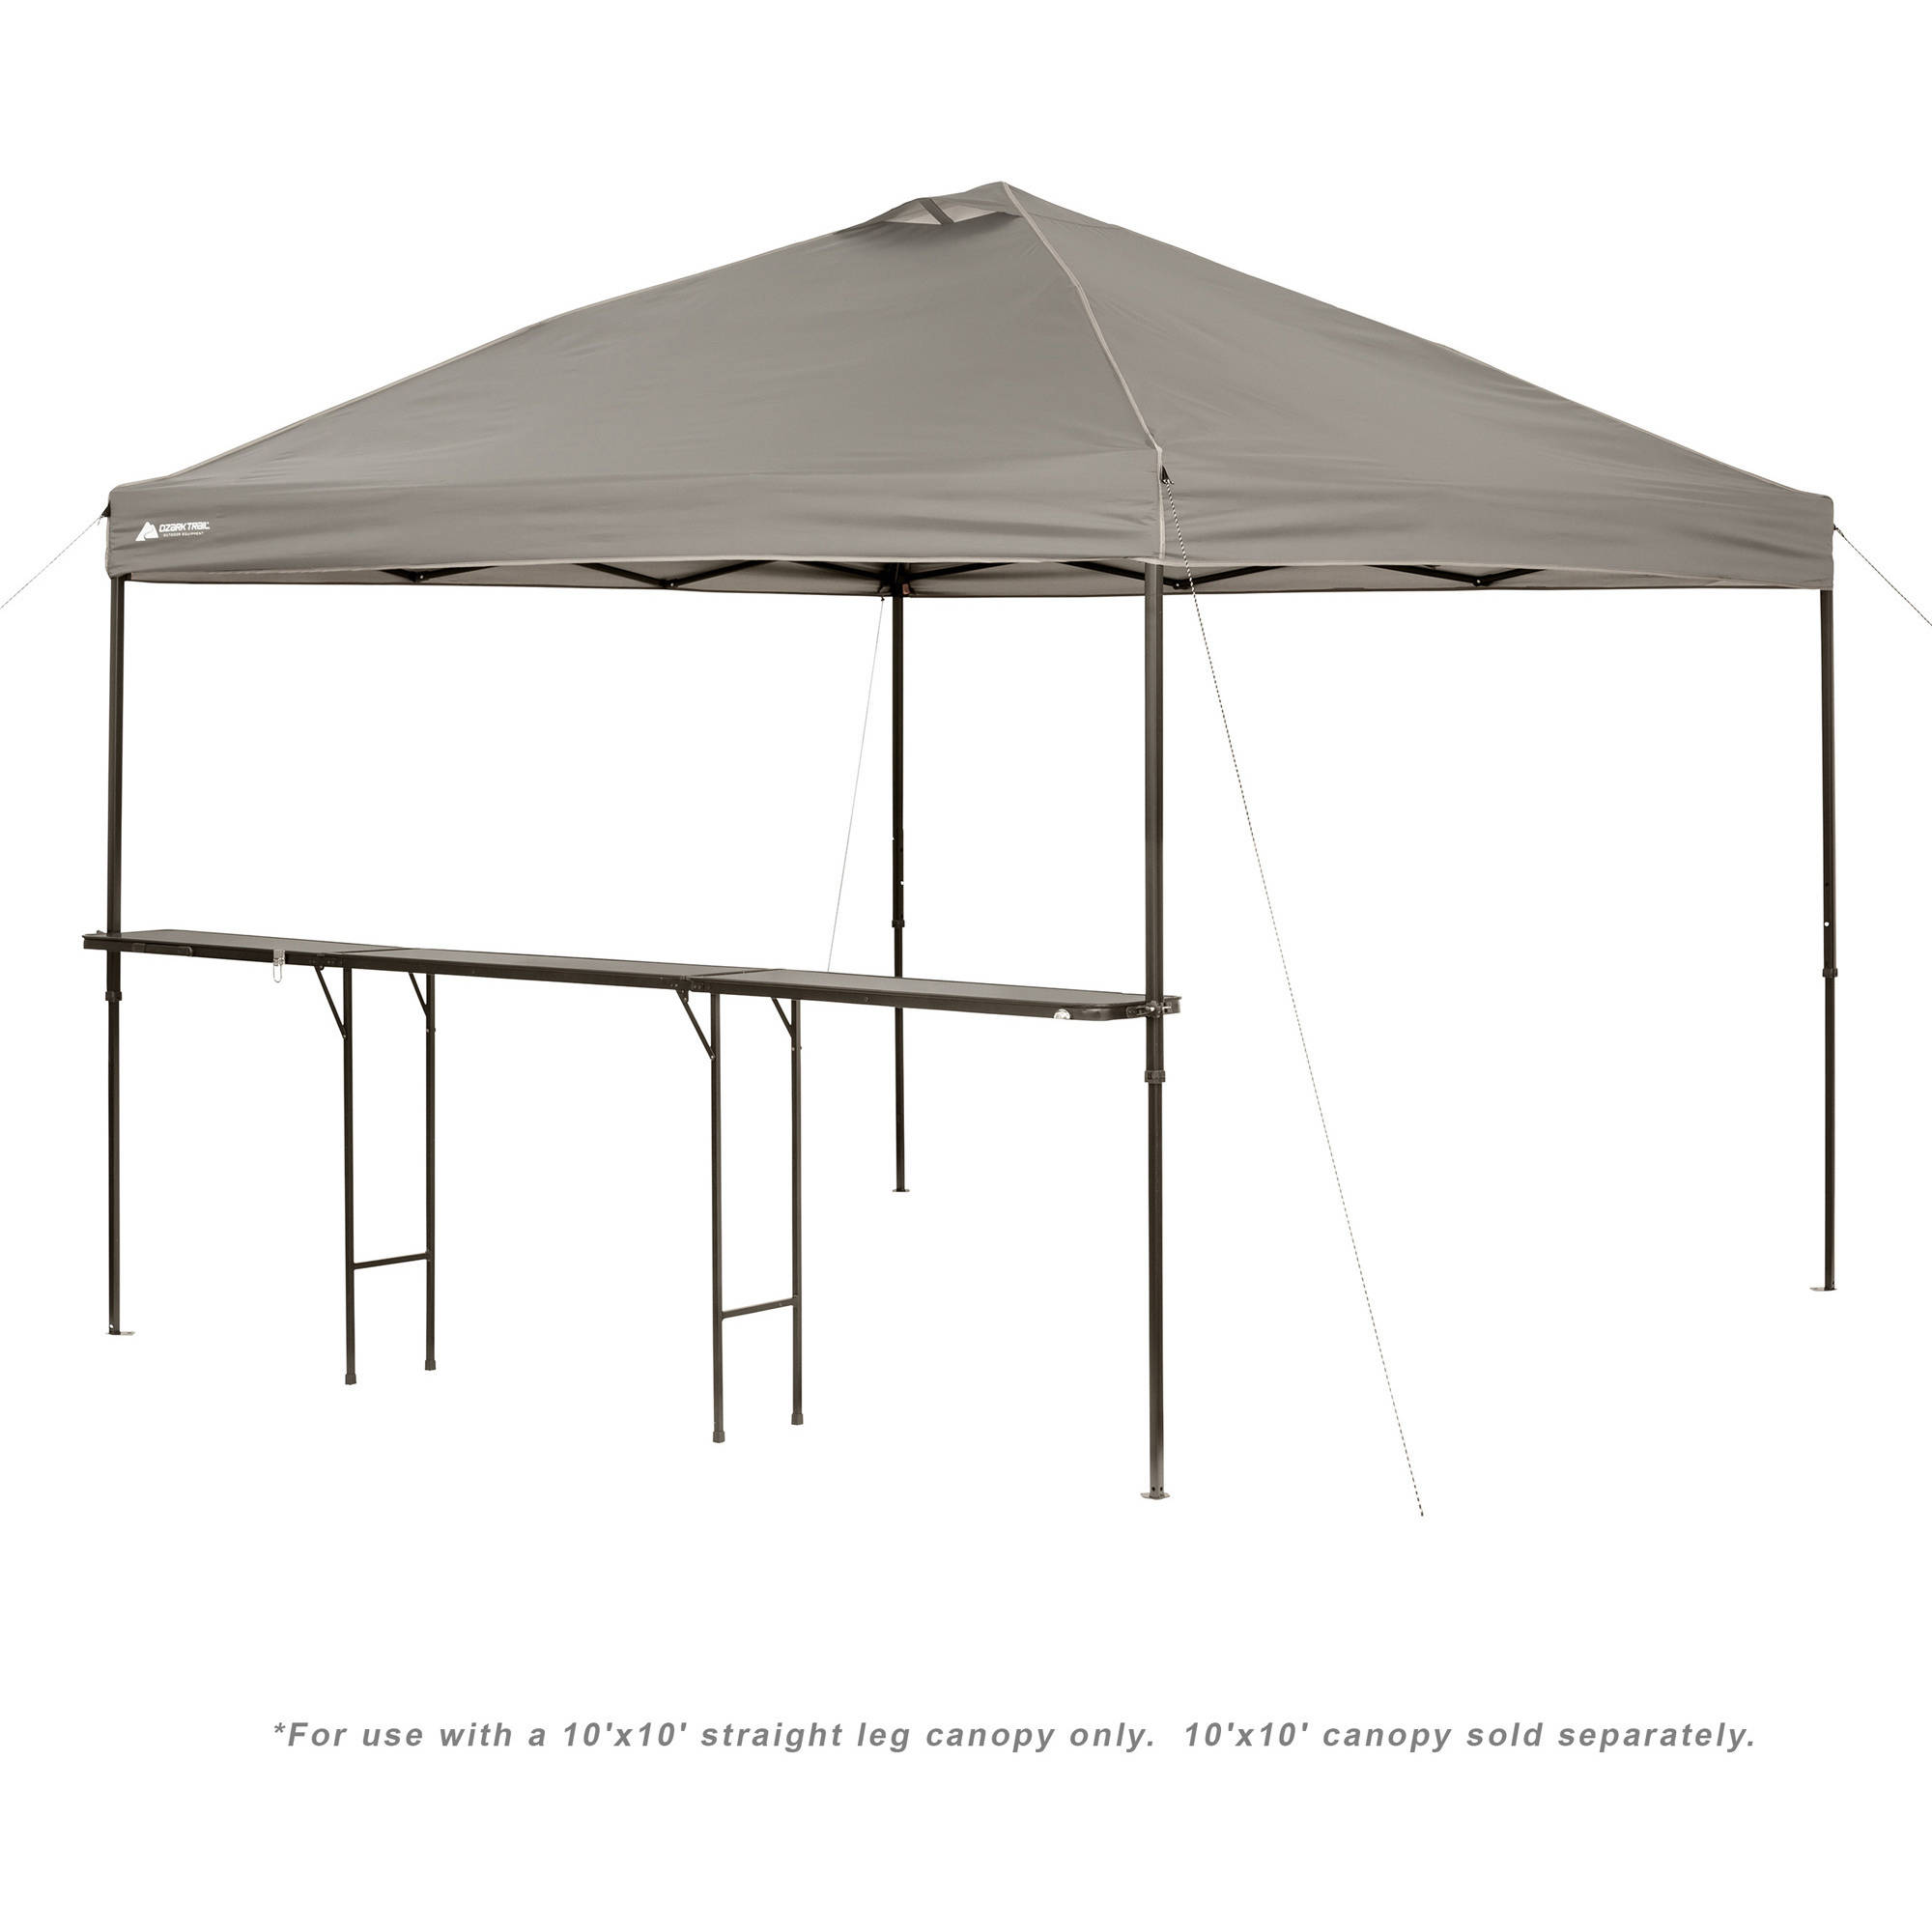 ozark trail bar height 10 folding canopy table walmartcom - U Shape Canopy 2015